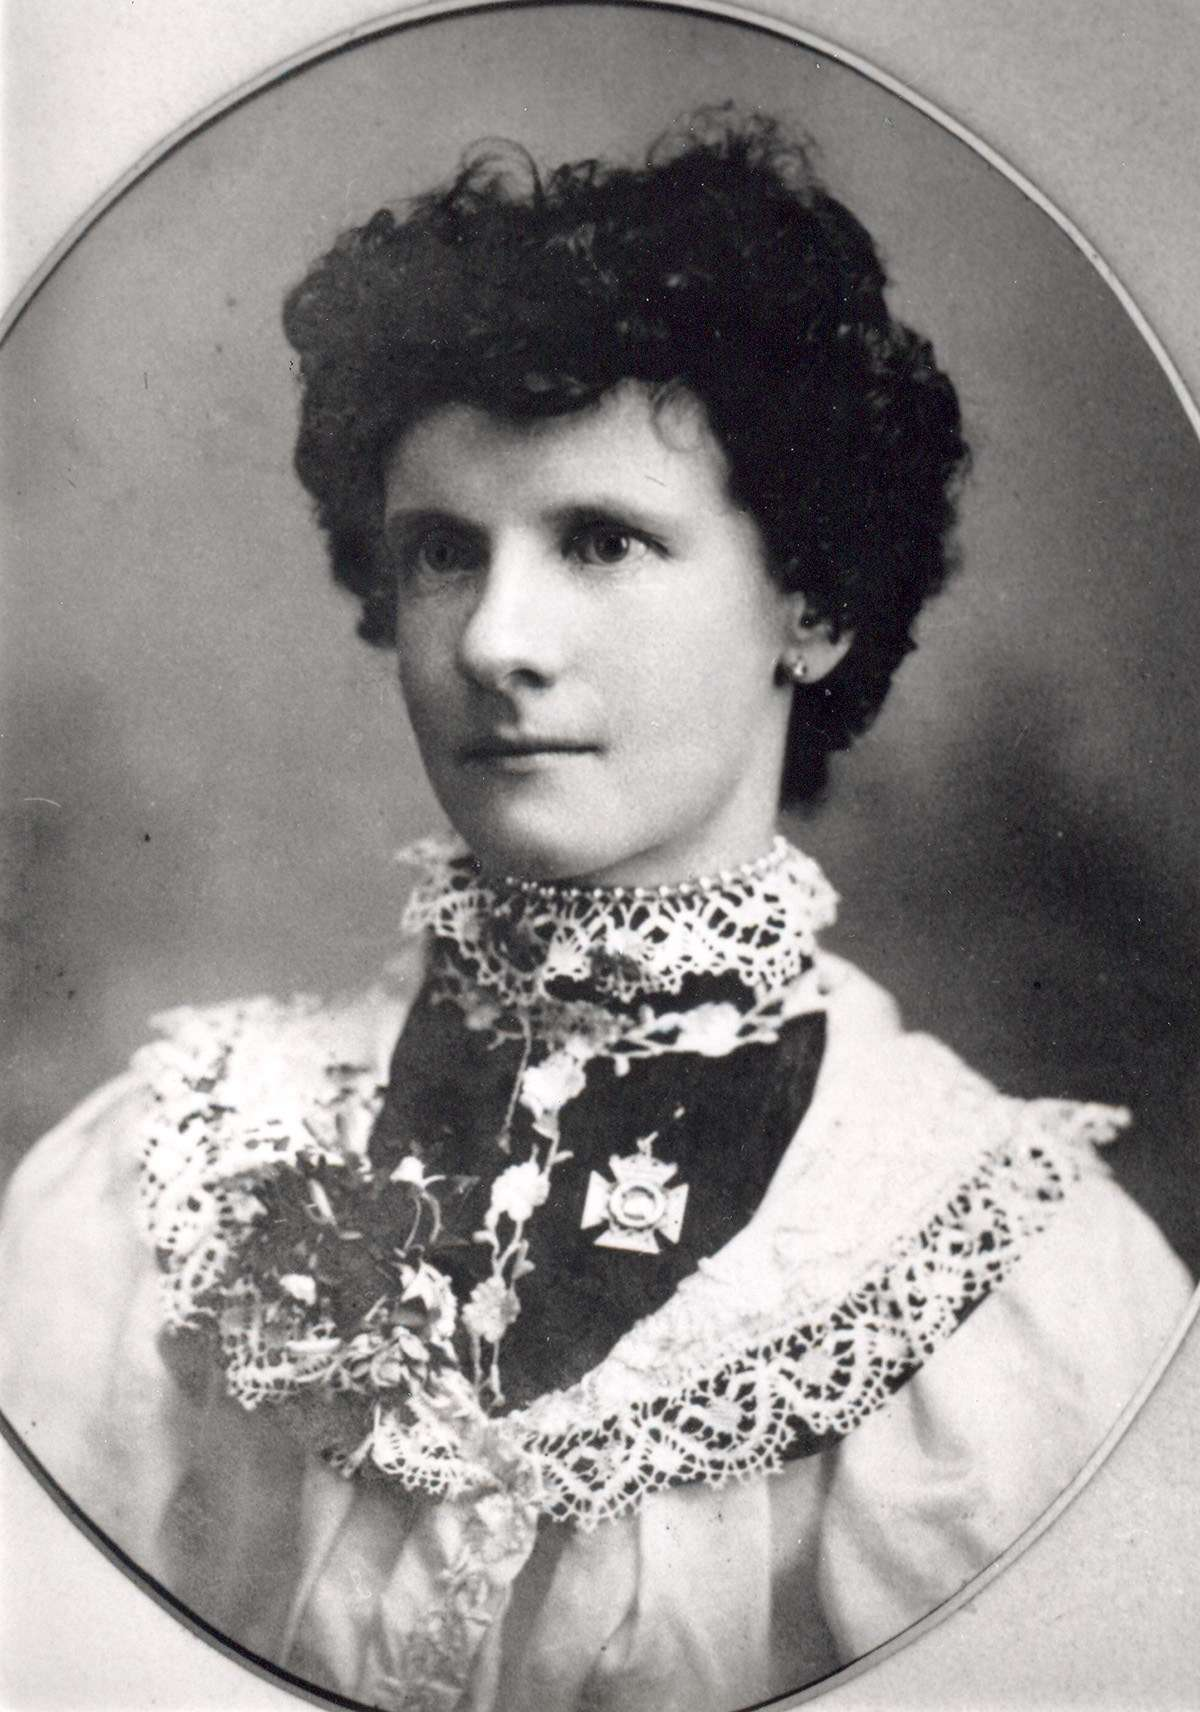 Irene Pritchard wearing her Anniversary Day medal. The top of the medal, which is in the shape of a Maltese cross, is a yacht. Photo courtesy Nedlands Library, WA